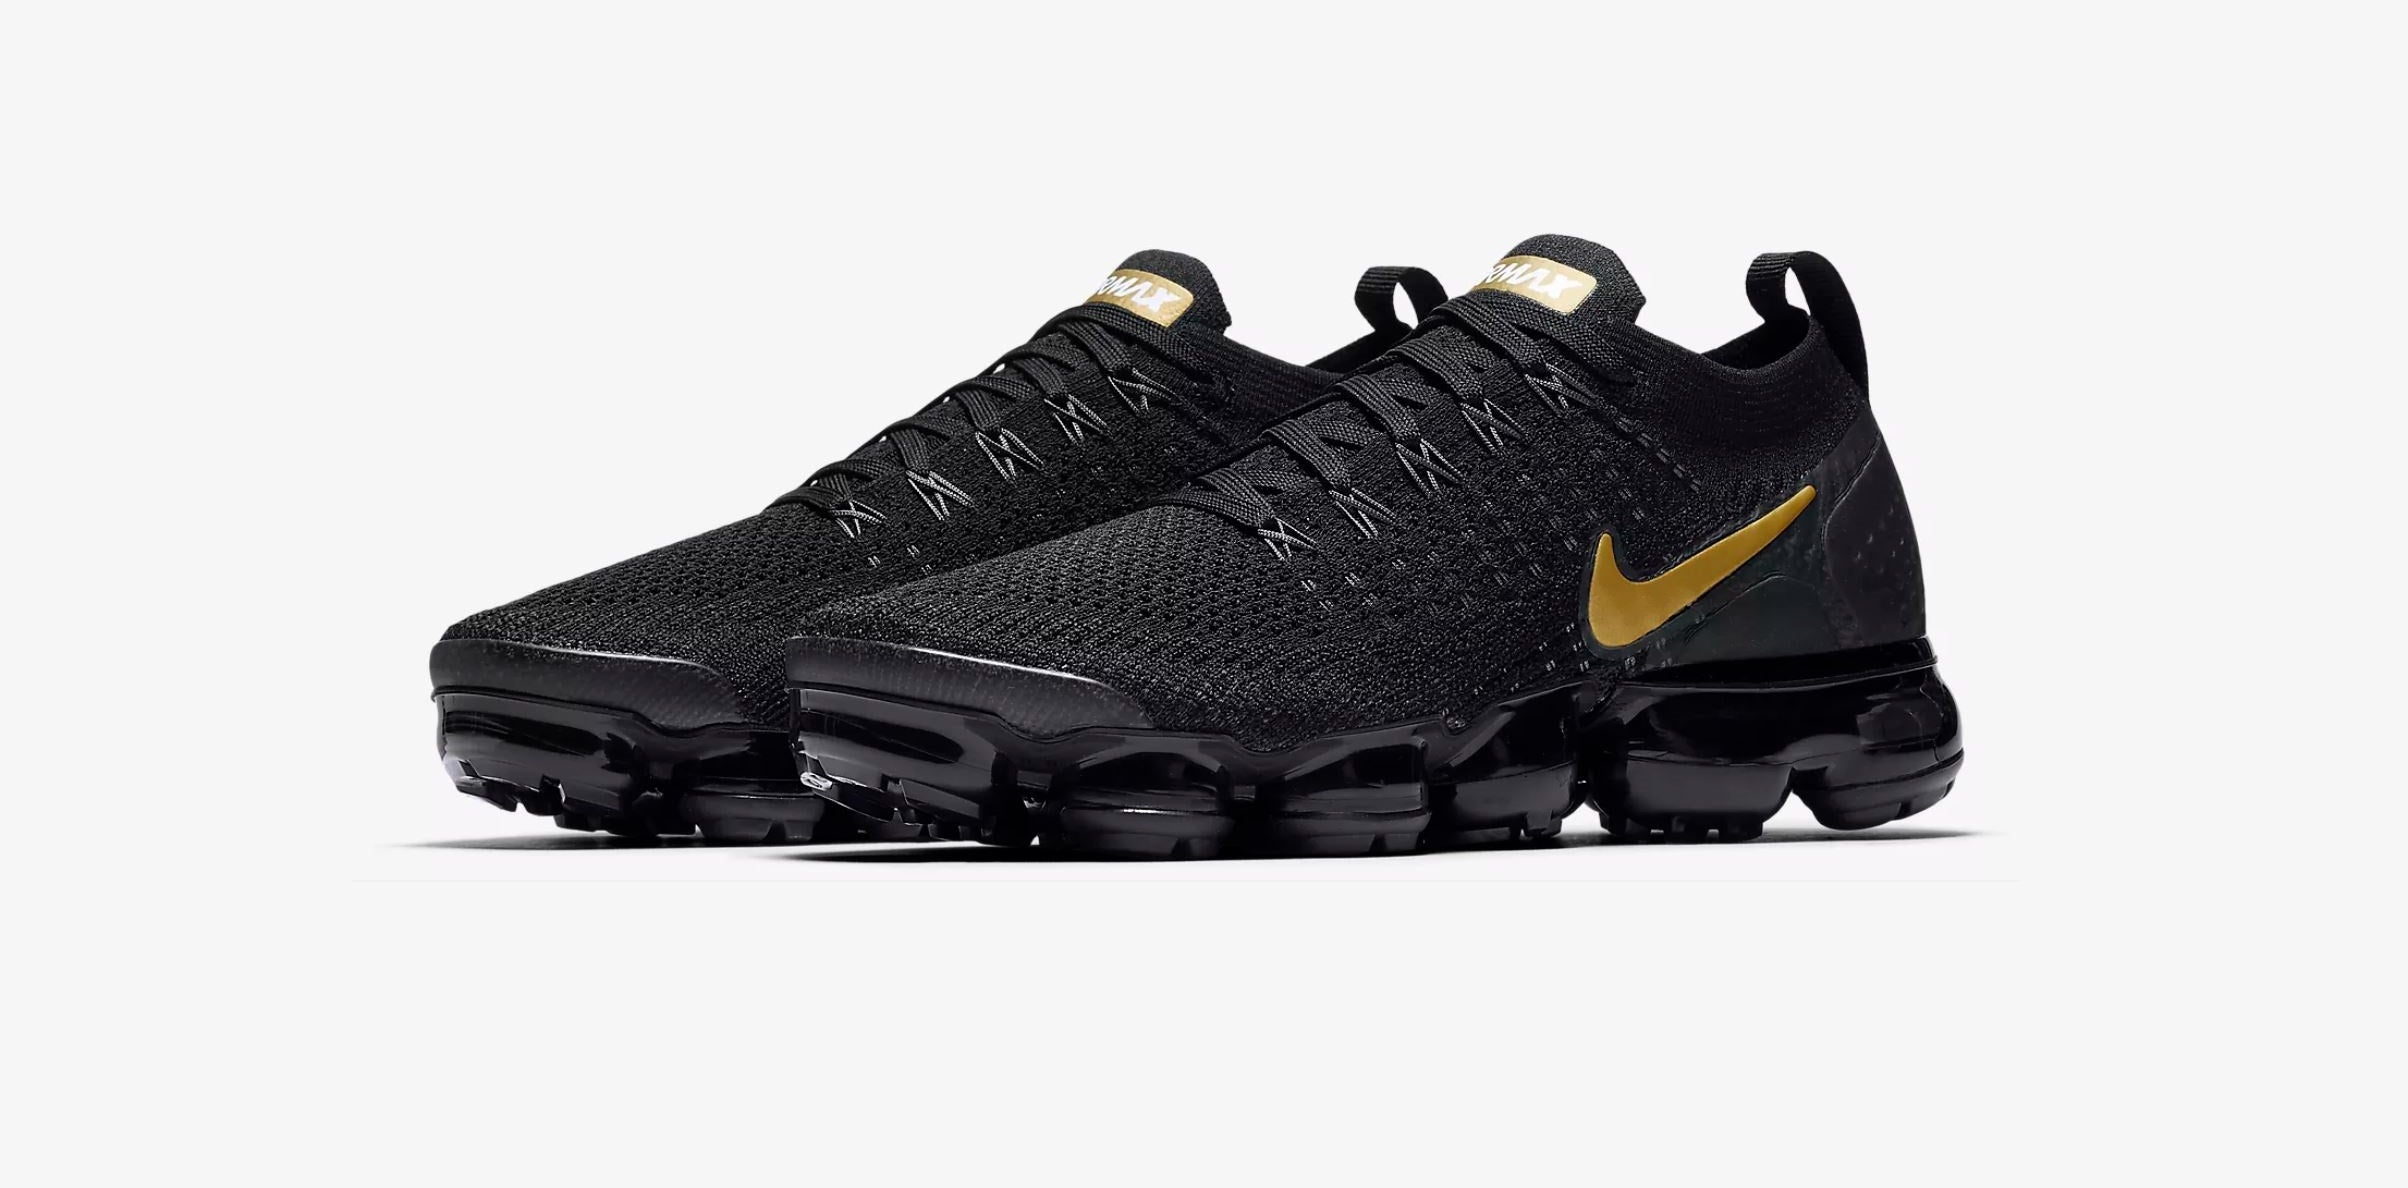 Nike Air VaporMax - Black/Gold